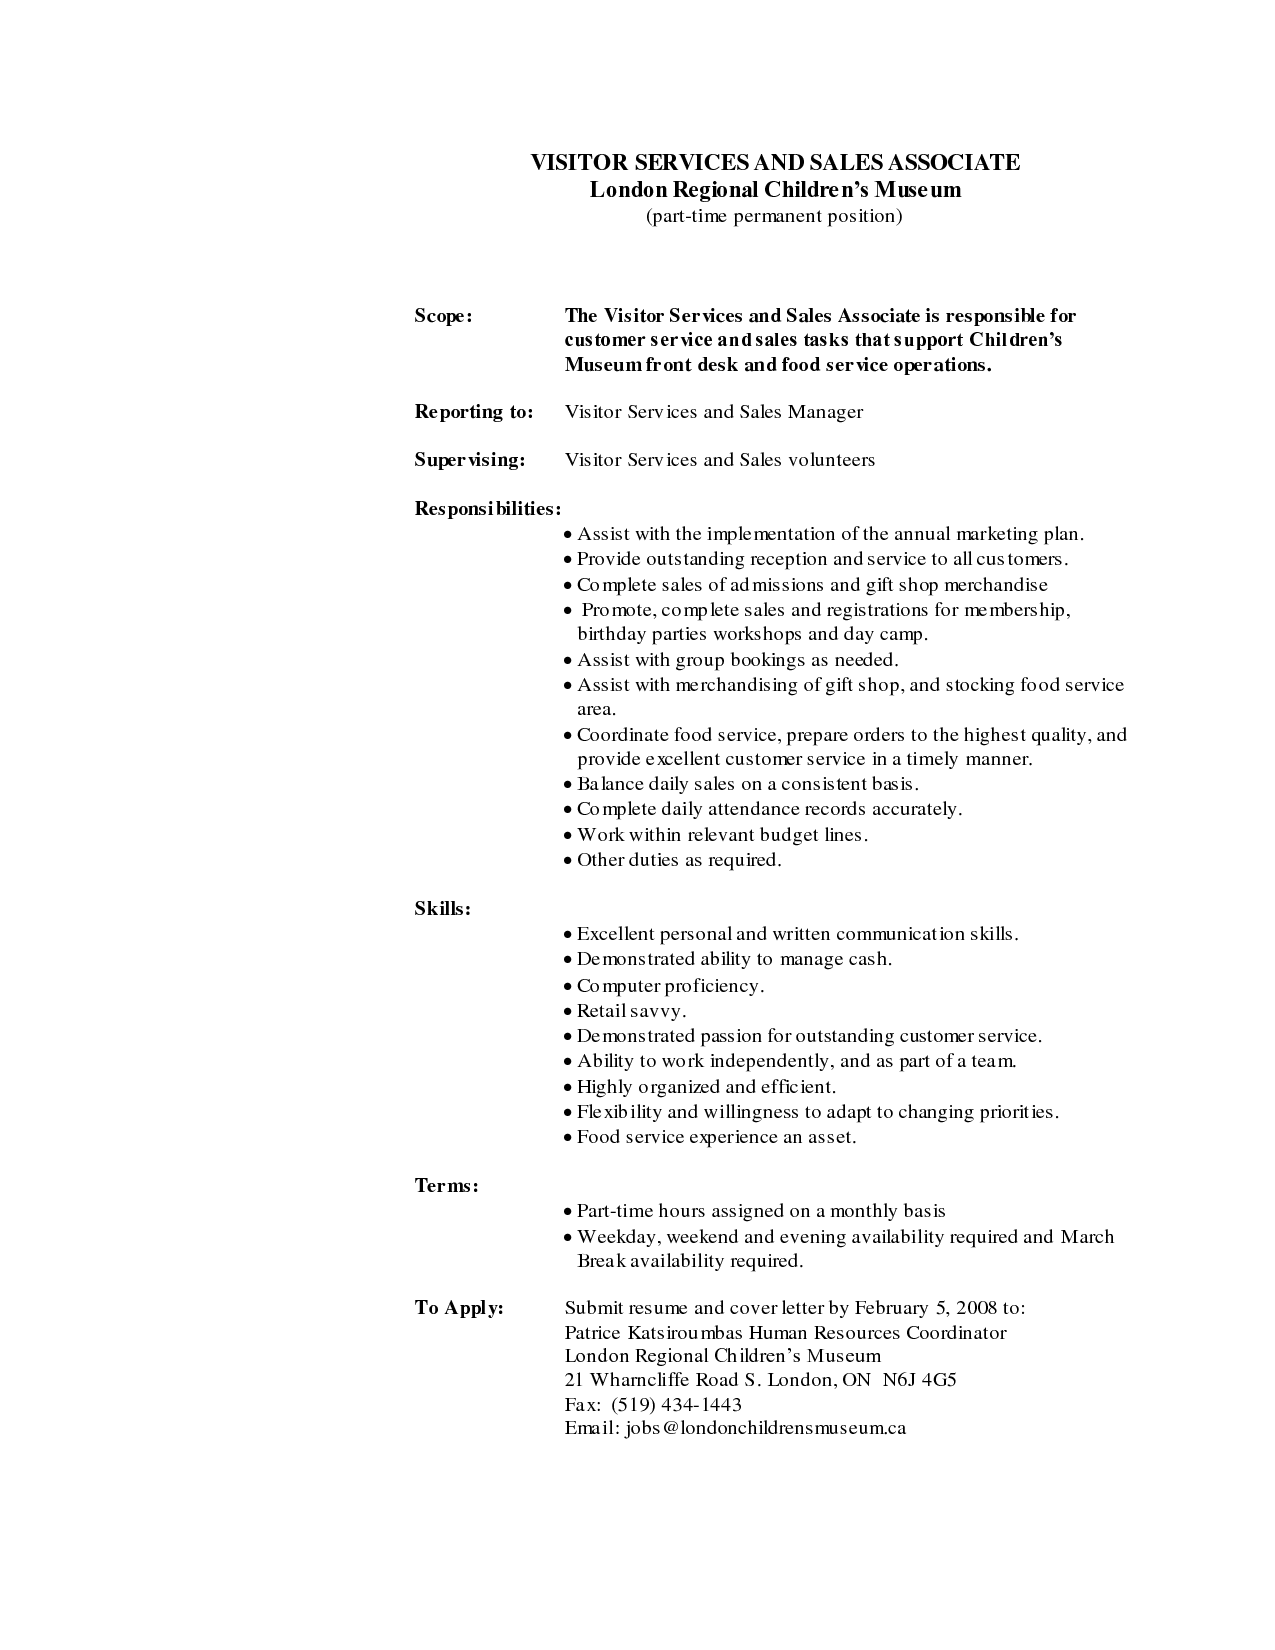 Resume Sample For Retail Job Krys Tk